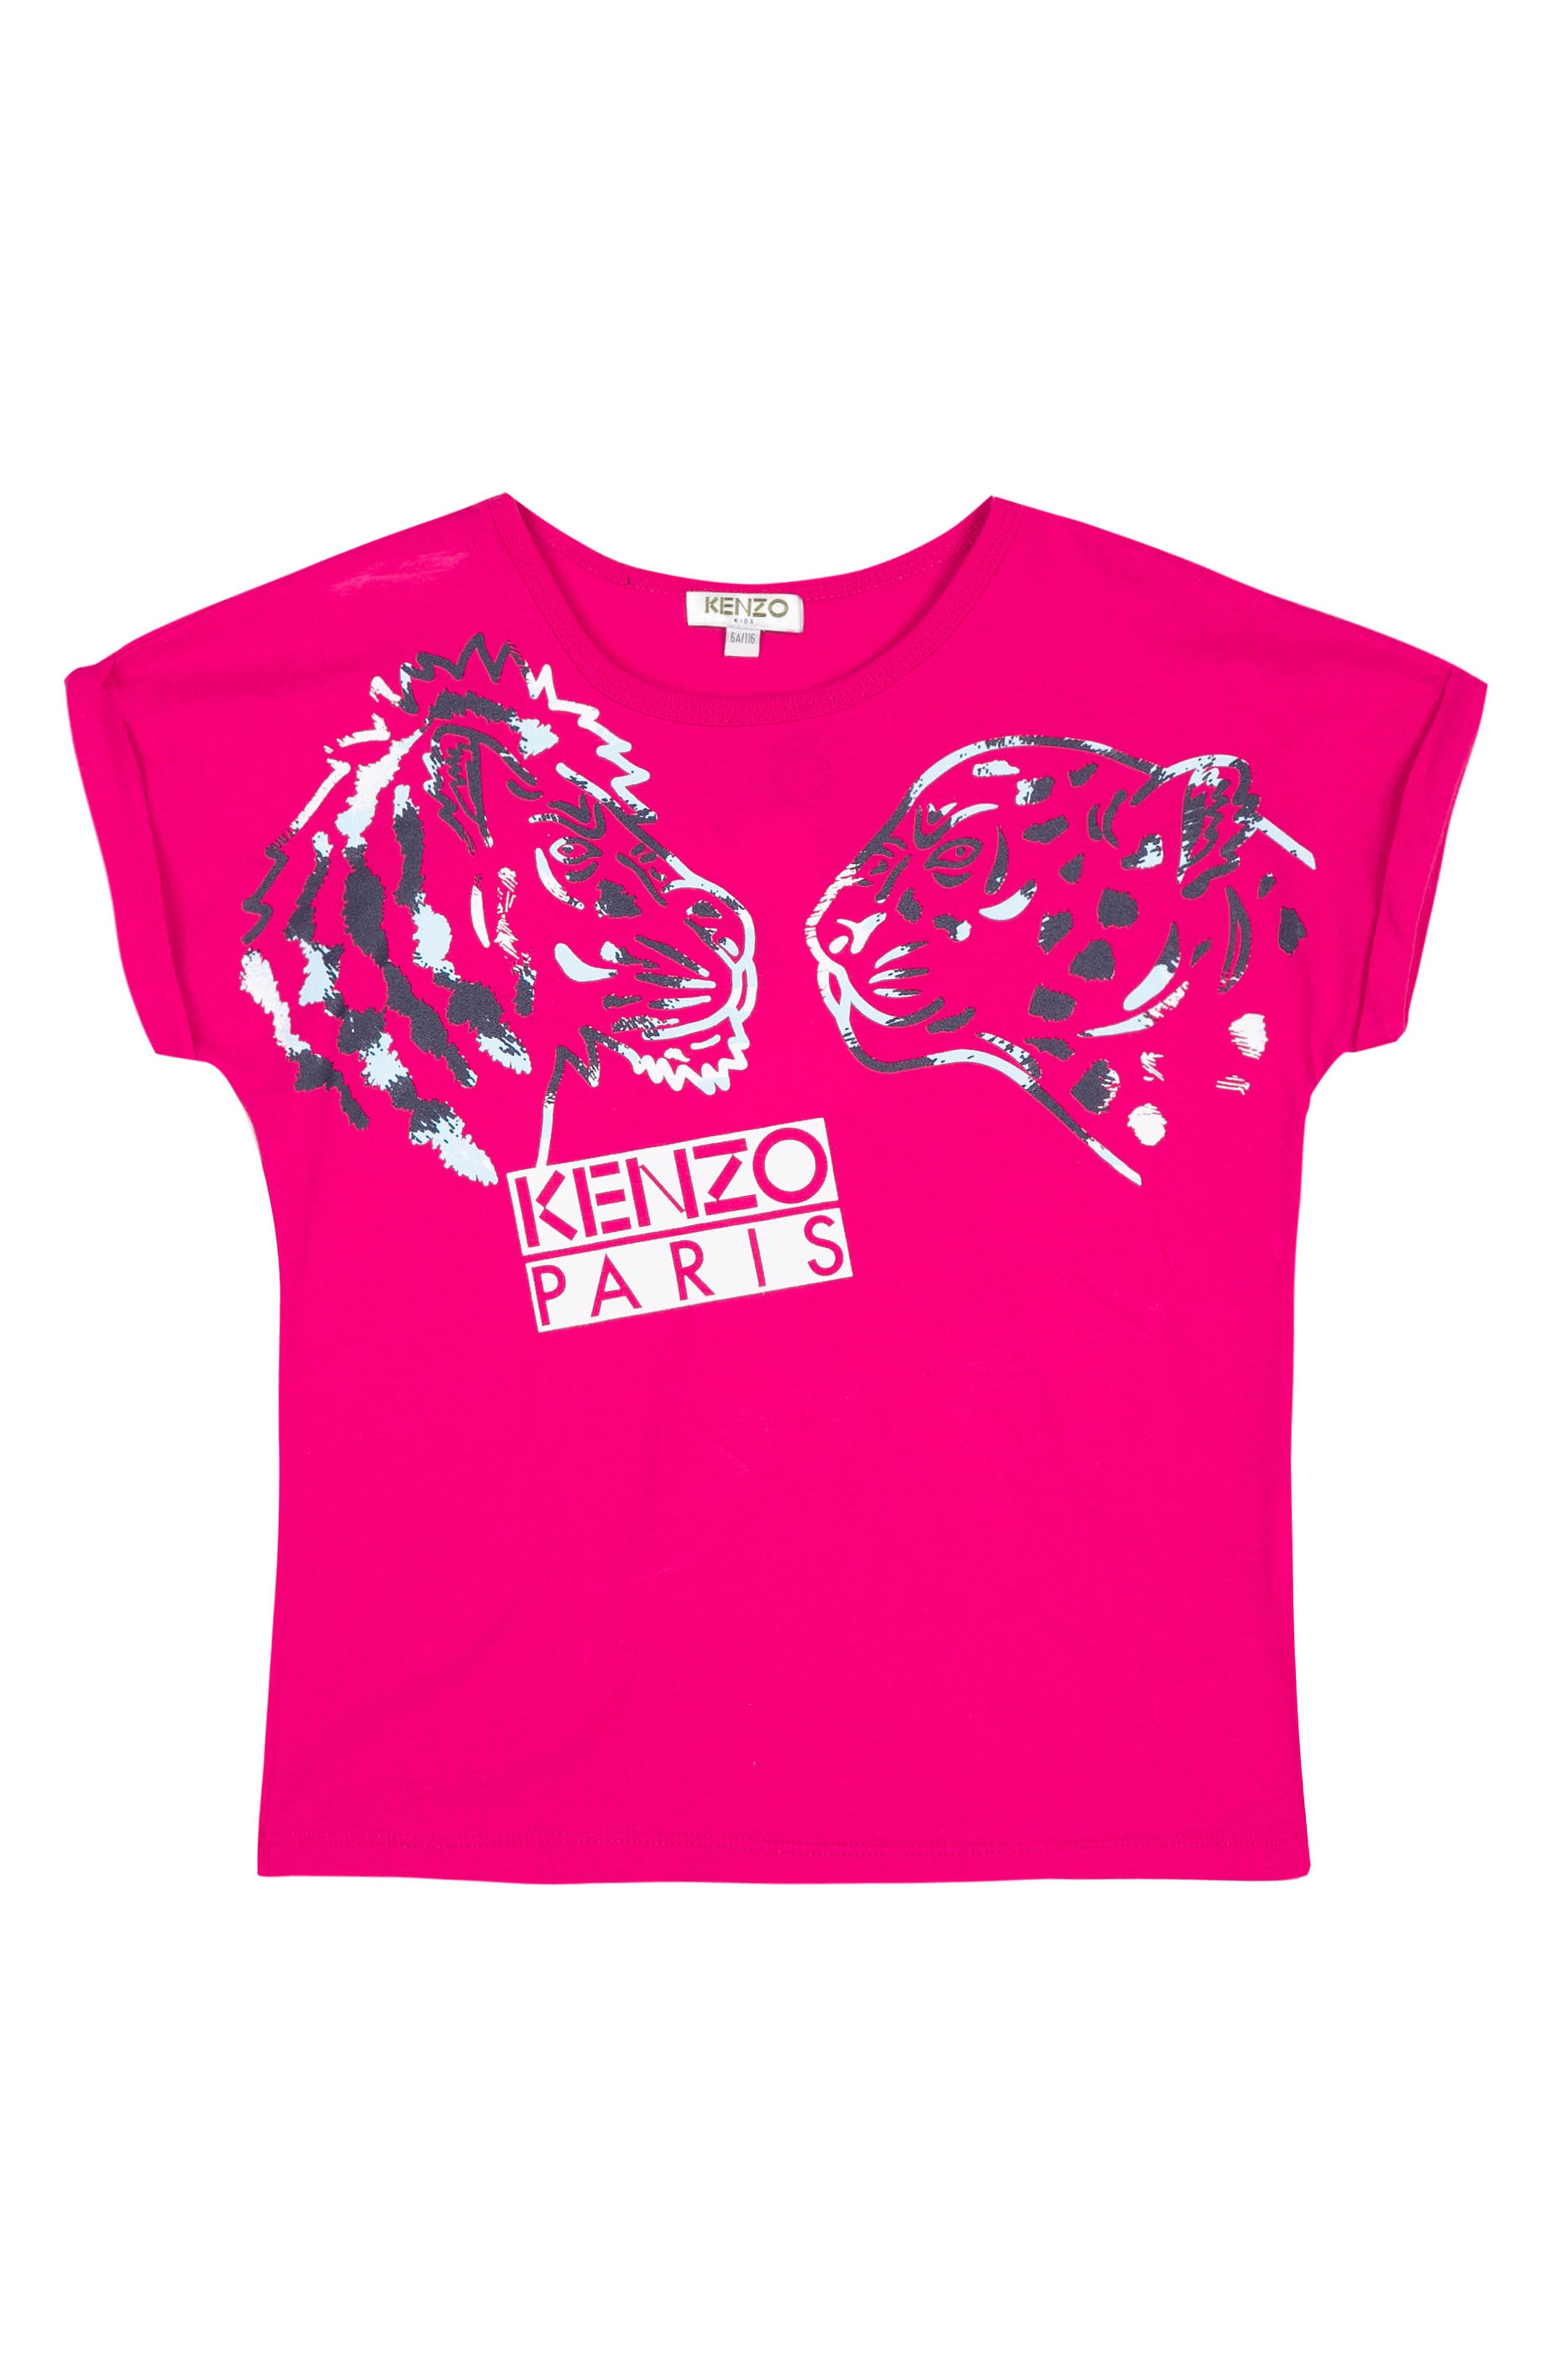 KENZO Tiger & Friend Graphic Tee (Toddler Girls, Little Girls & Big Girls)